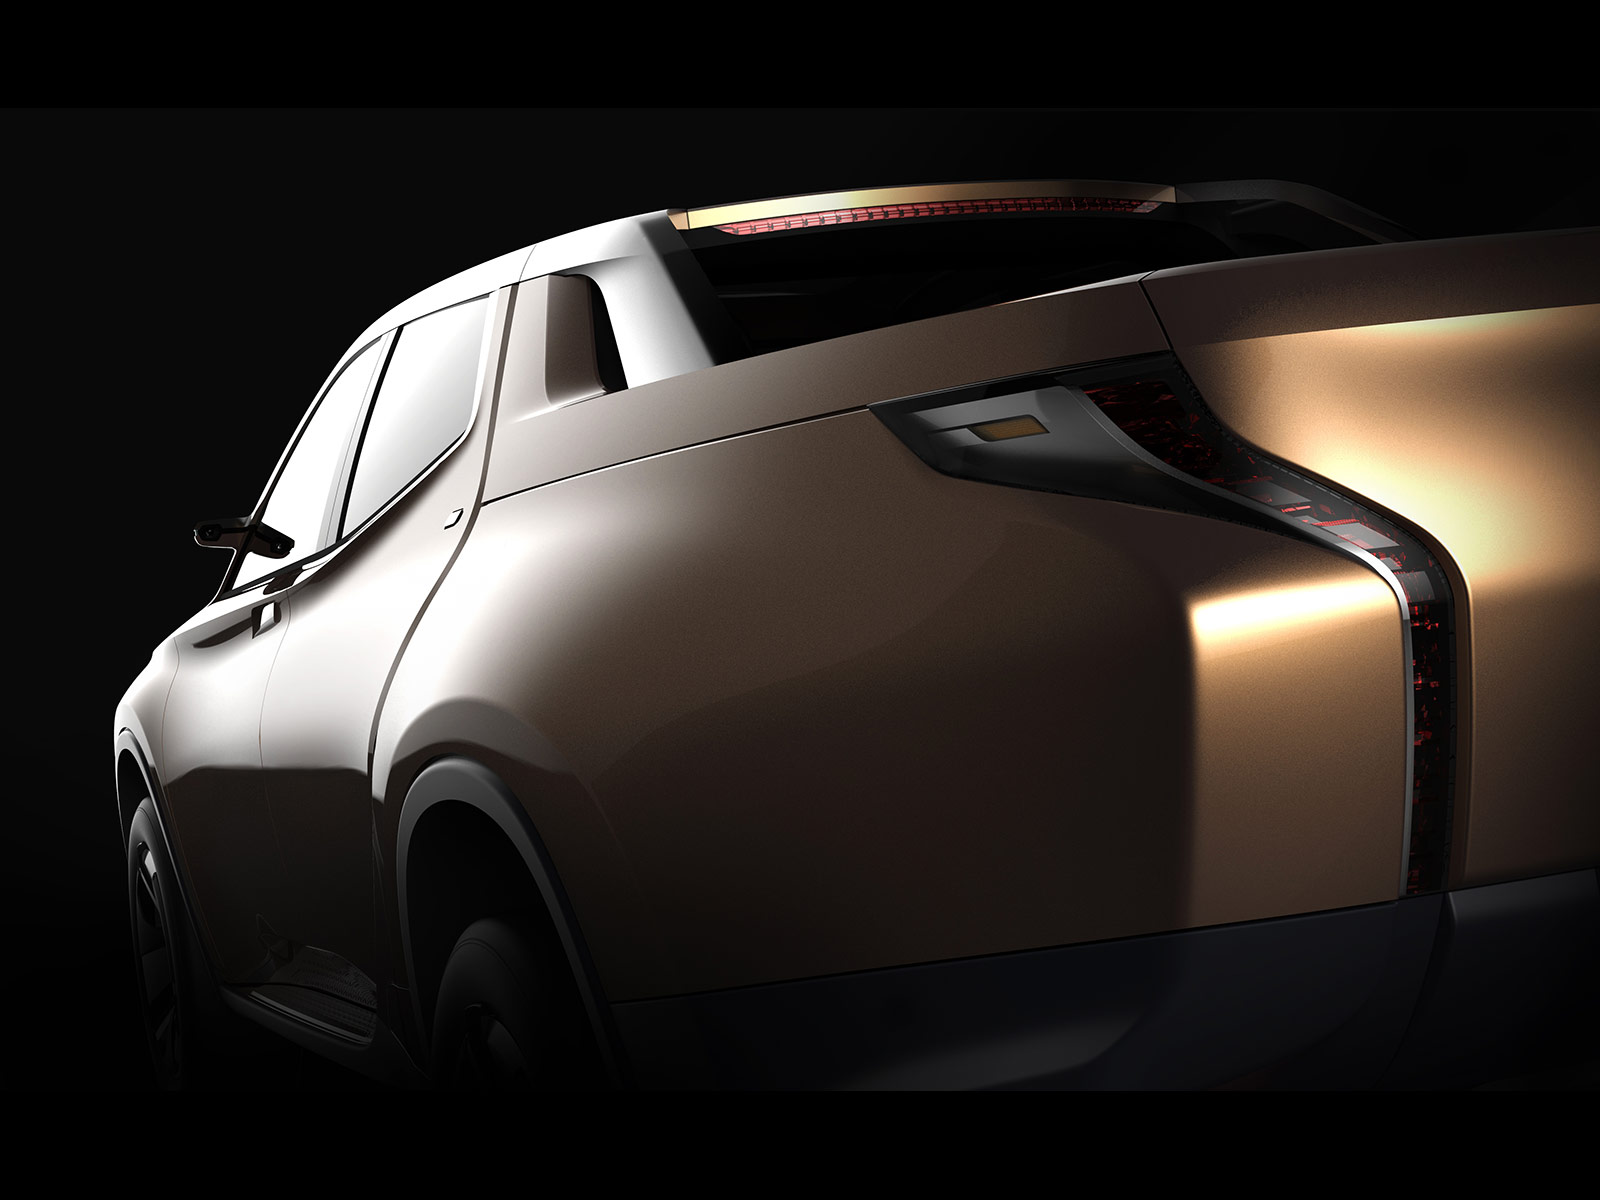 Mitsubishi Concept GR-HEV preview